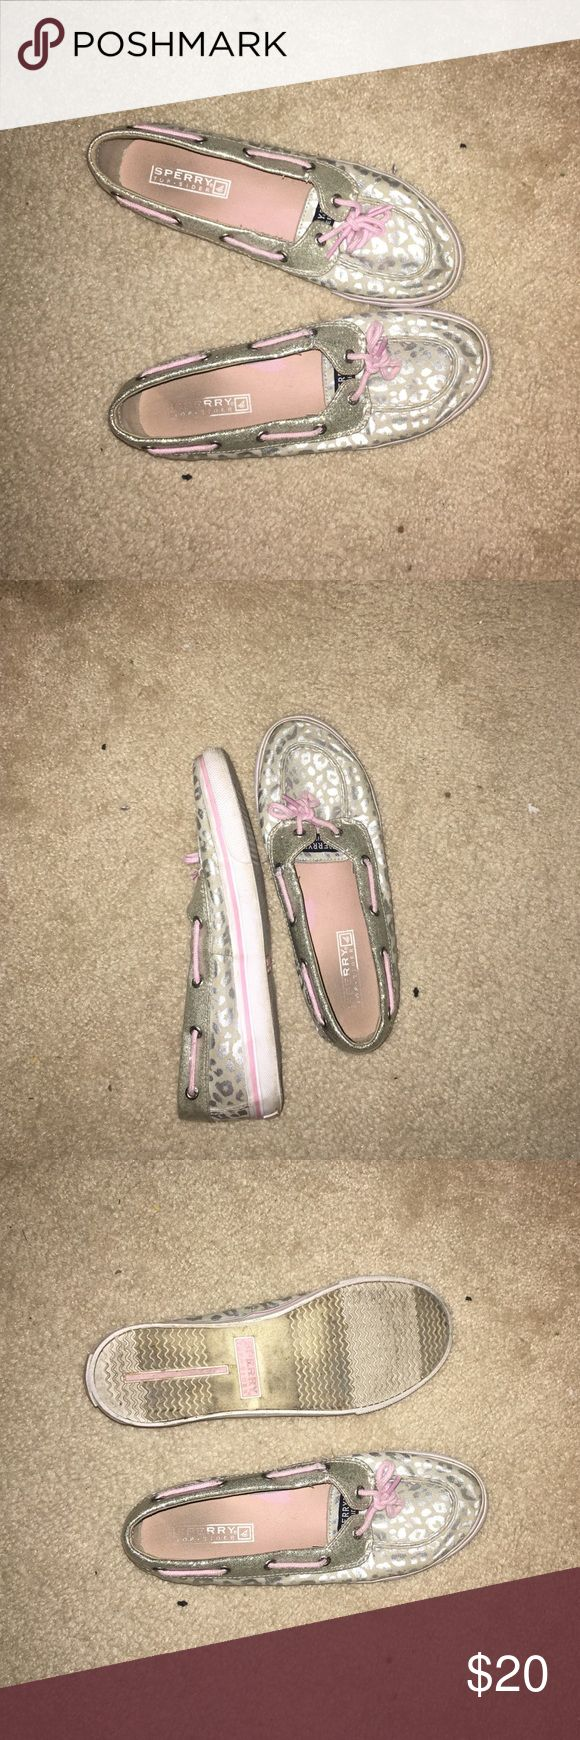 Sperry kids leopard shoes Pink and silver sperrys they are a little dirty but can be easily cleaned. They are a size 4.5 in kids I am a size 6 in women's and they fit me perfect Sperry Top-Sider Shoes